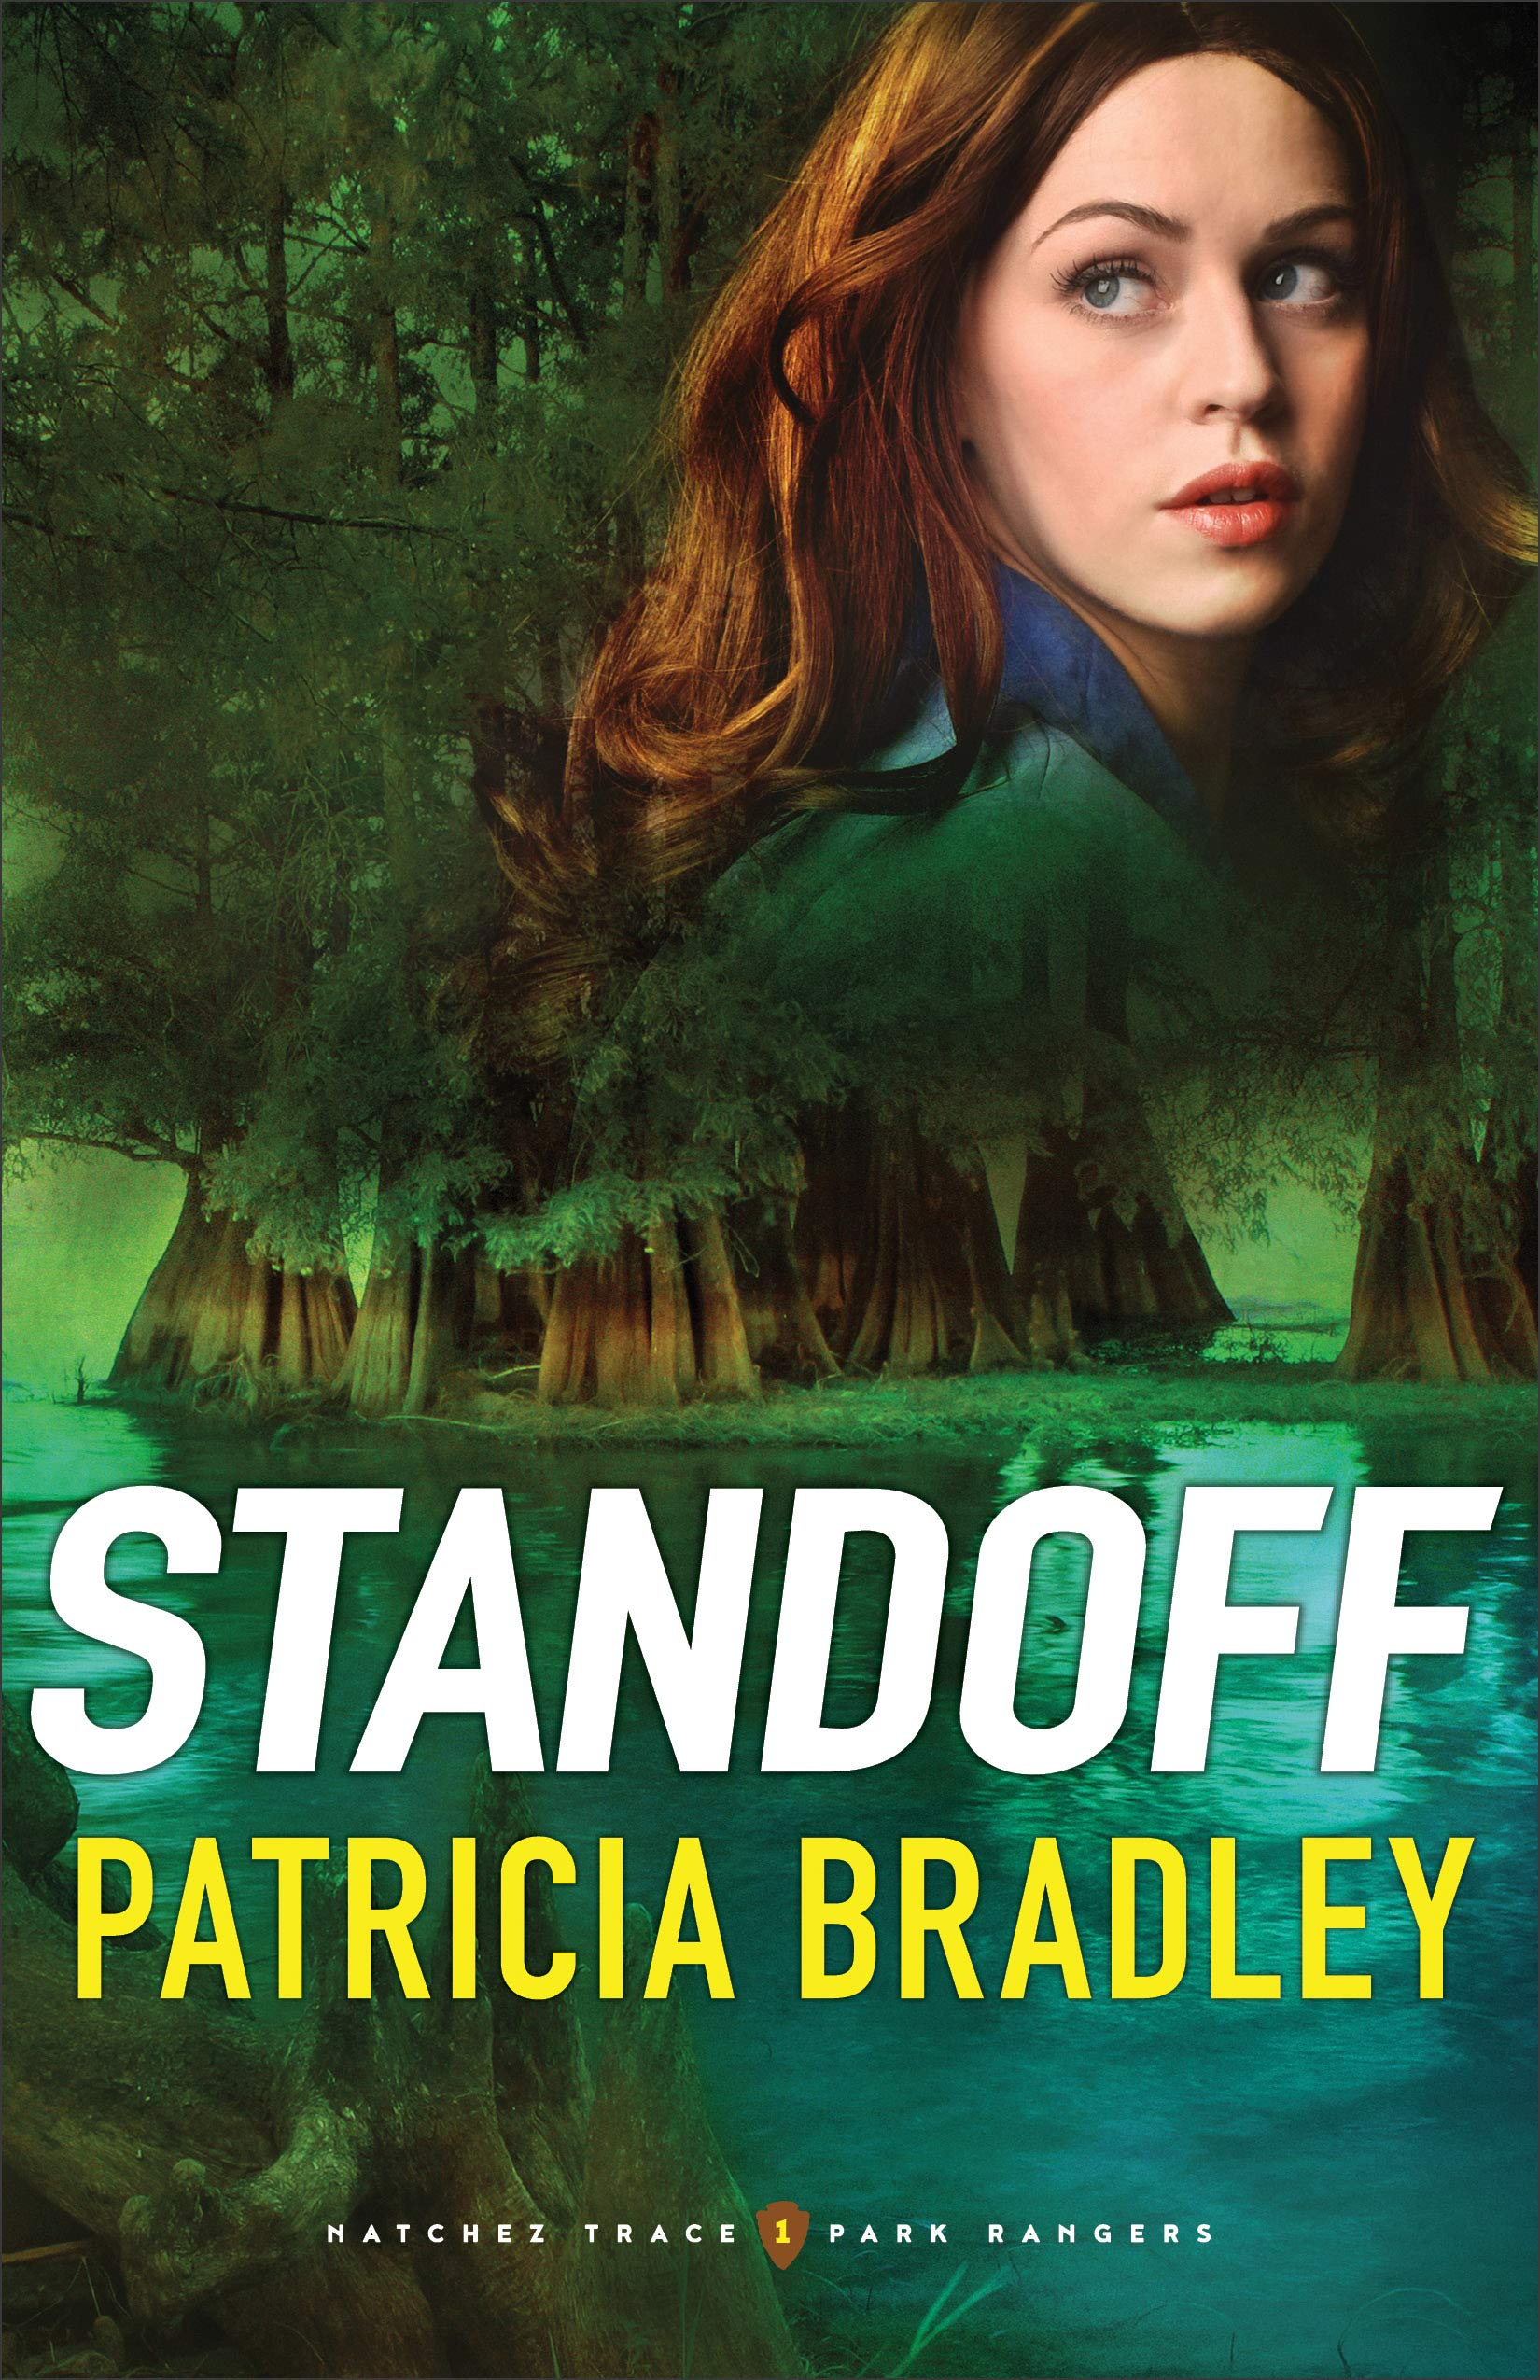 Standoff by Patricia Bradley {A Book Review}